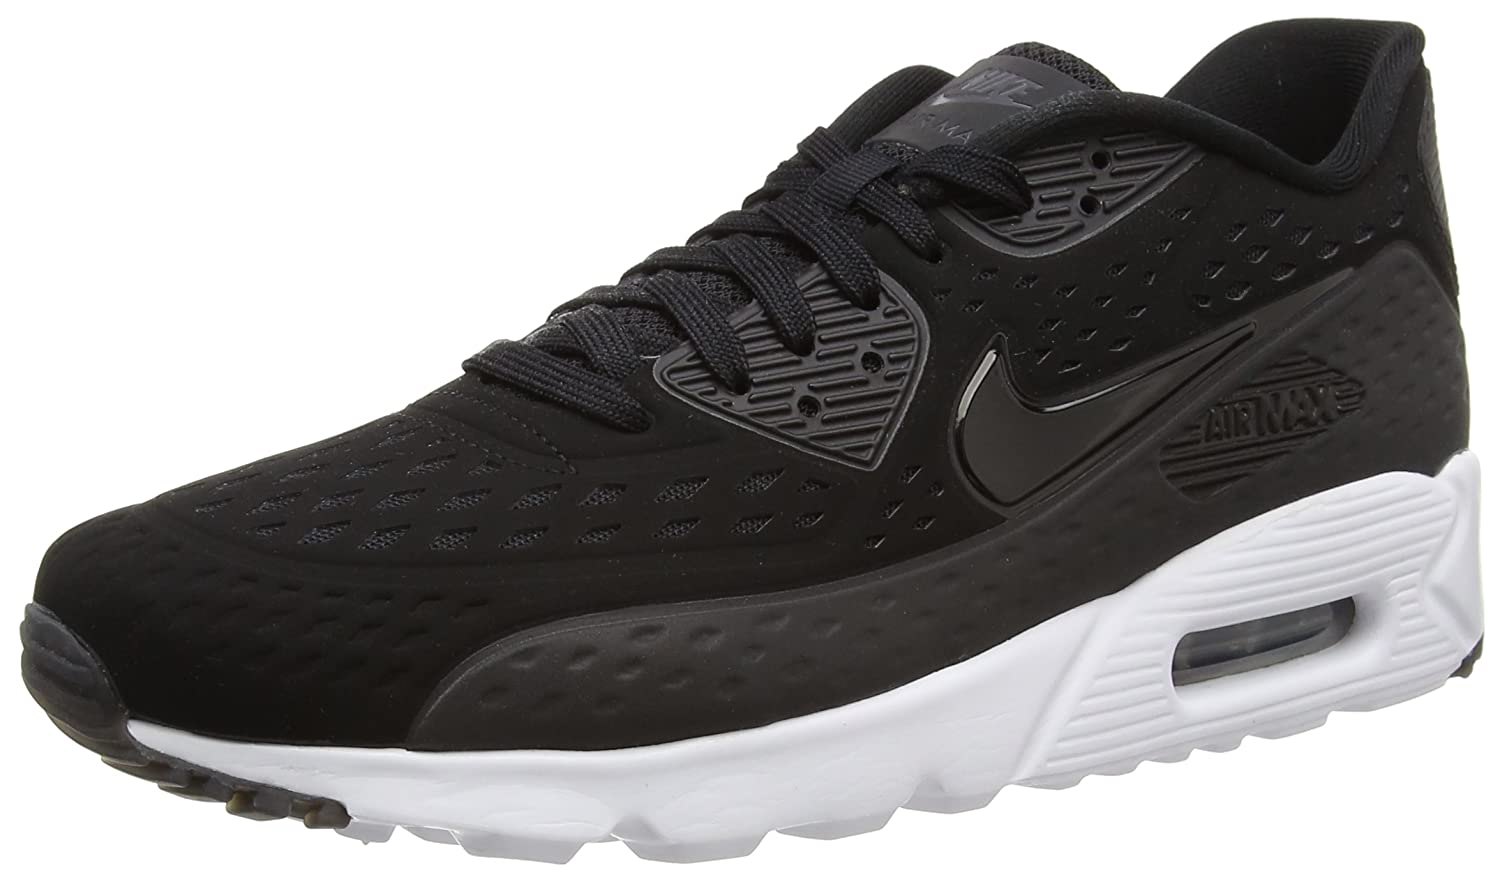 huge selection of 29296 a279e Amazon.com | NIKE Men's Air Max 90 Ultra Br Running Shoes | Running